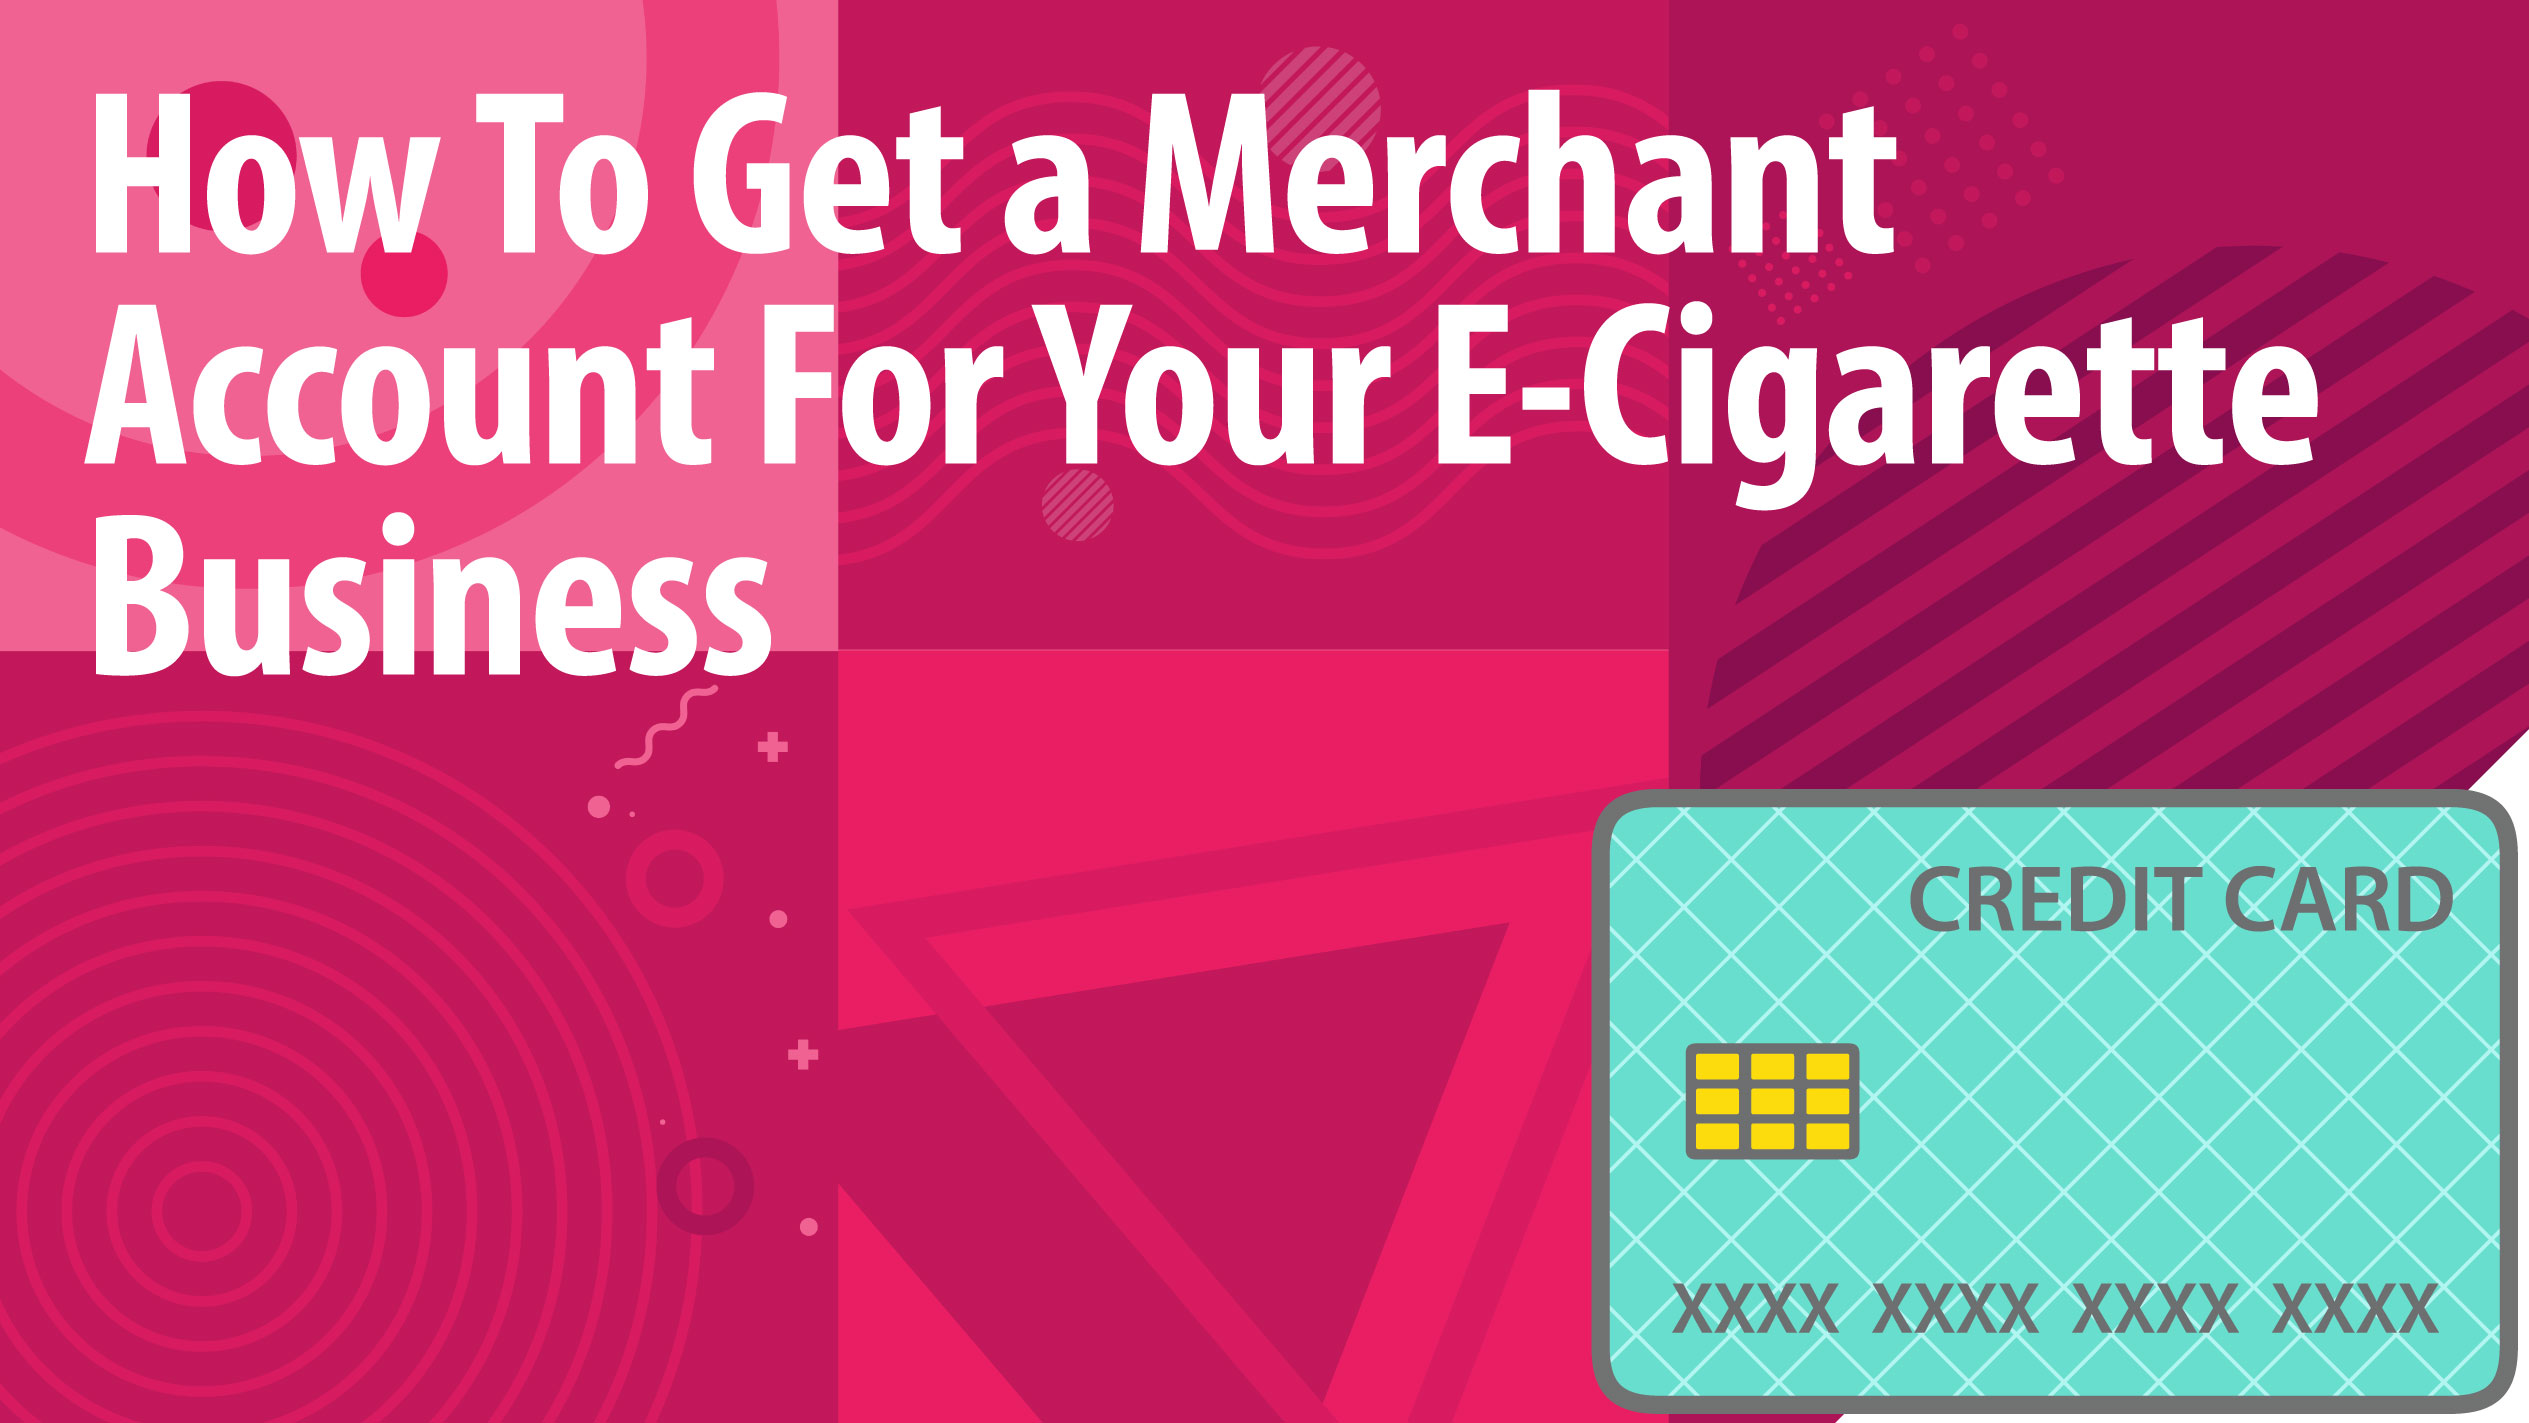 How To Get a Merchant Account For Your E-Cigarette Business